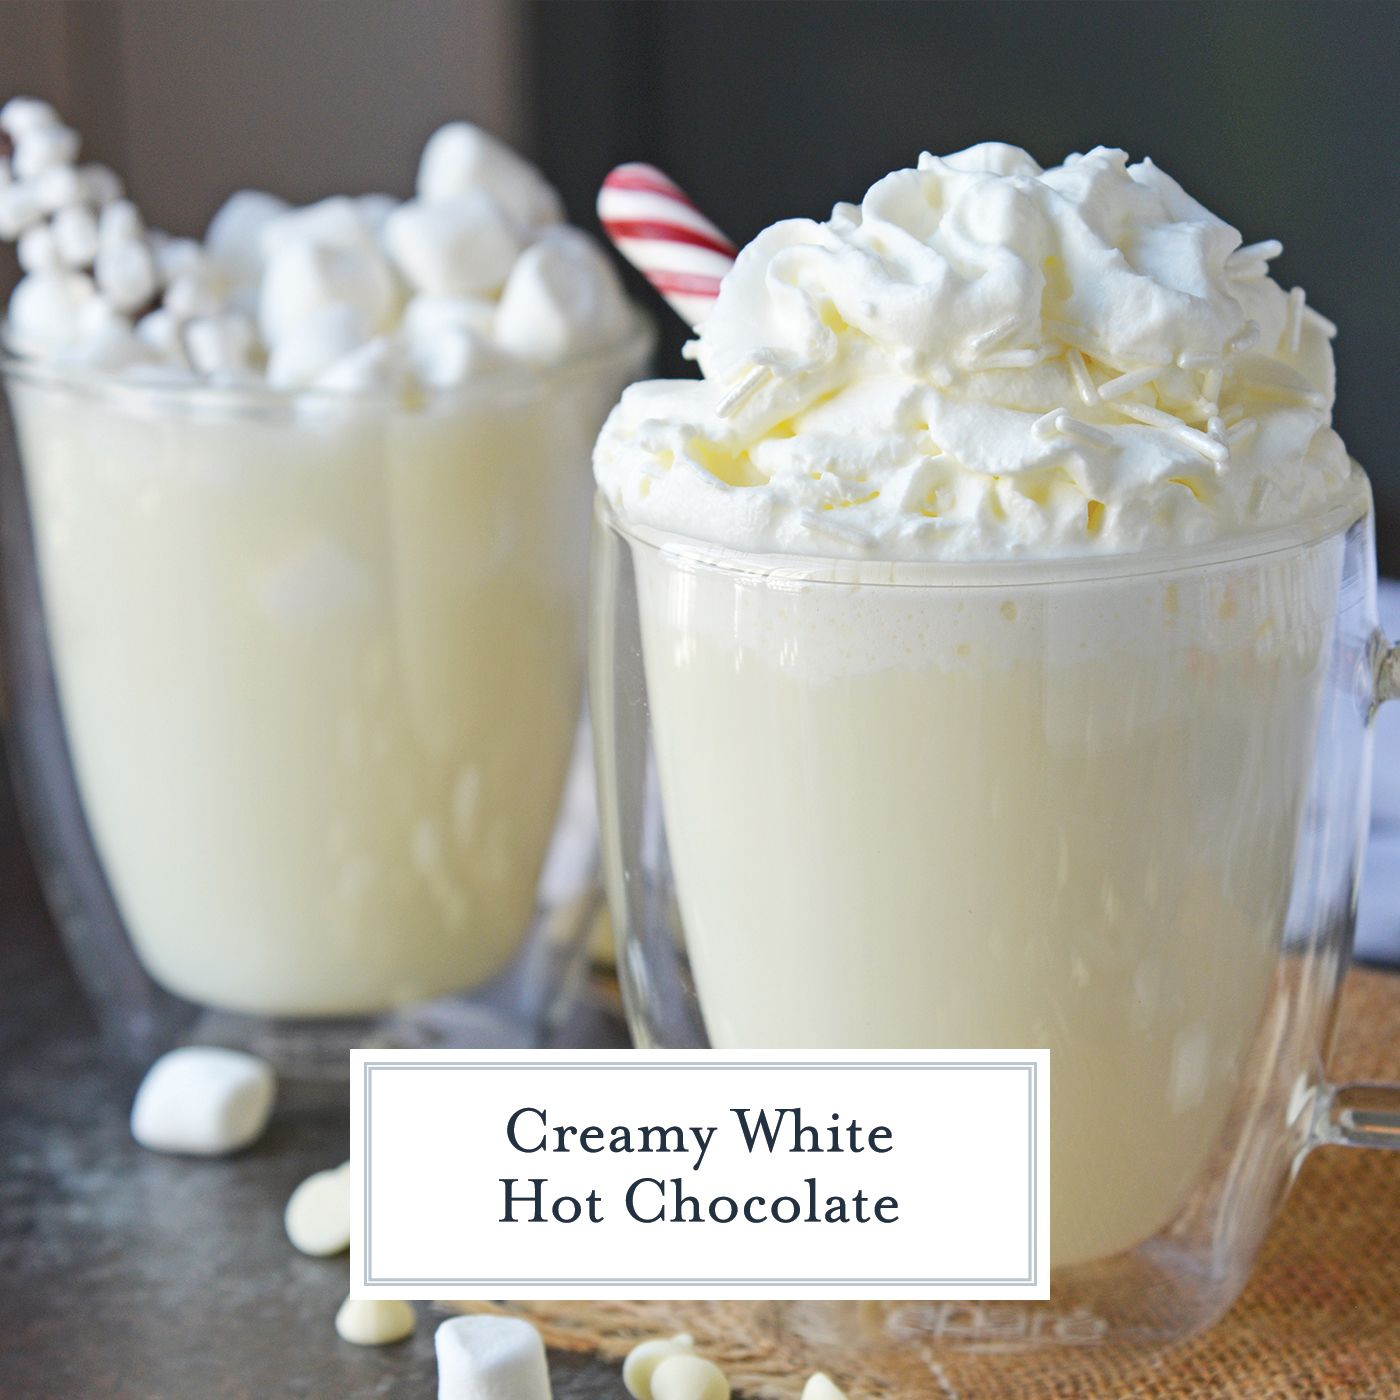 Homemade White Hot Chocolate is the perfect drink for warming up on cold days. White chocolate hot chocolate is delicious, quick and easy to make! #whitehotchocolaterecipe #whitehotcocoa www.savoryexperiments.com #hotchocolatebar